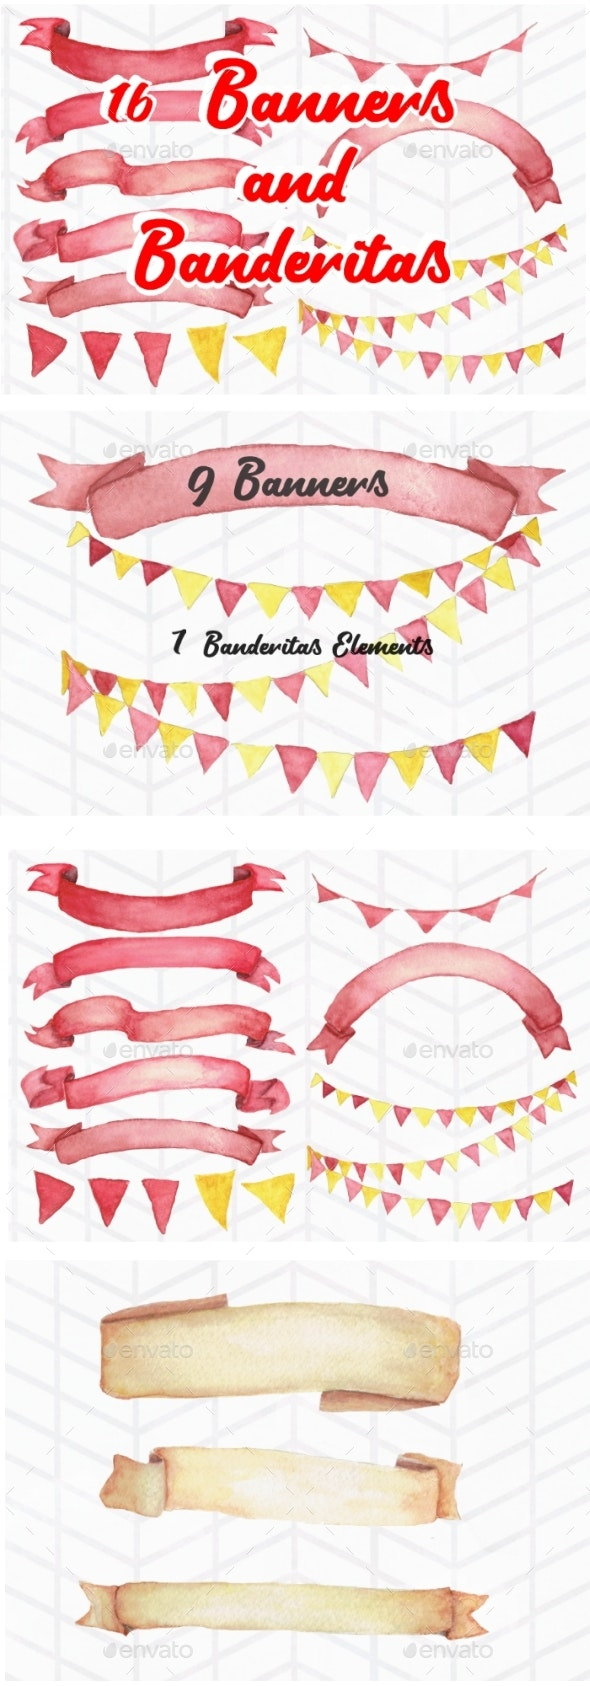 16 Watercolor Banners and Banderitas - Objects Illustrations